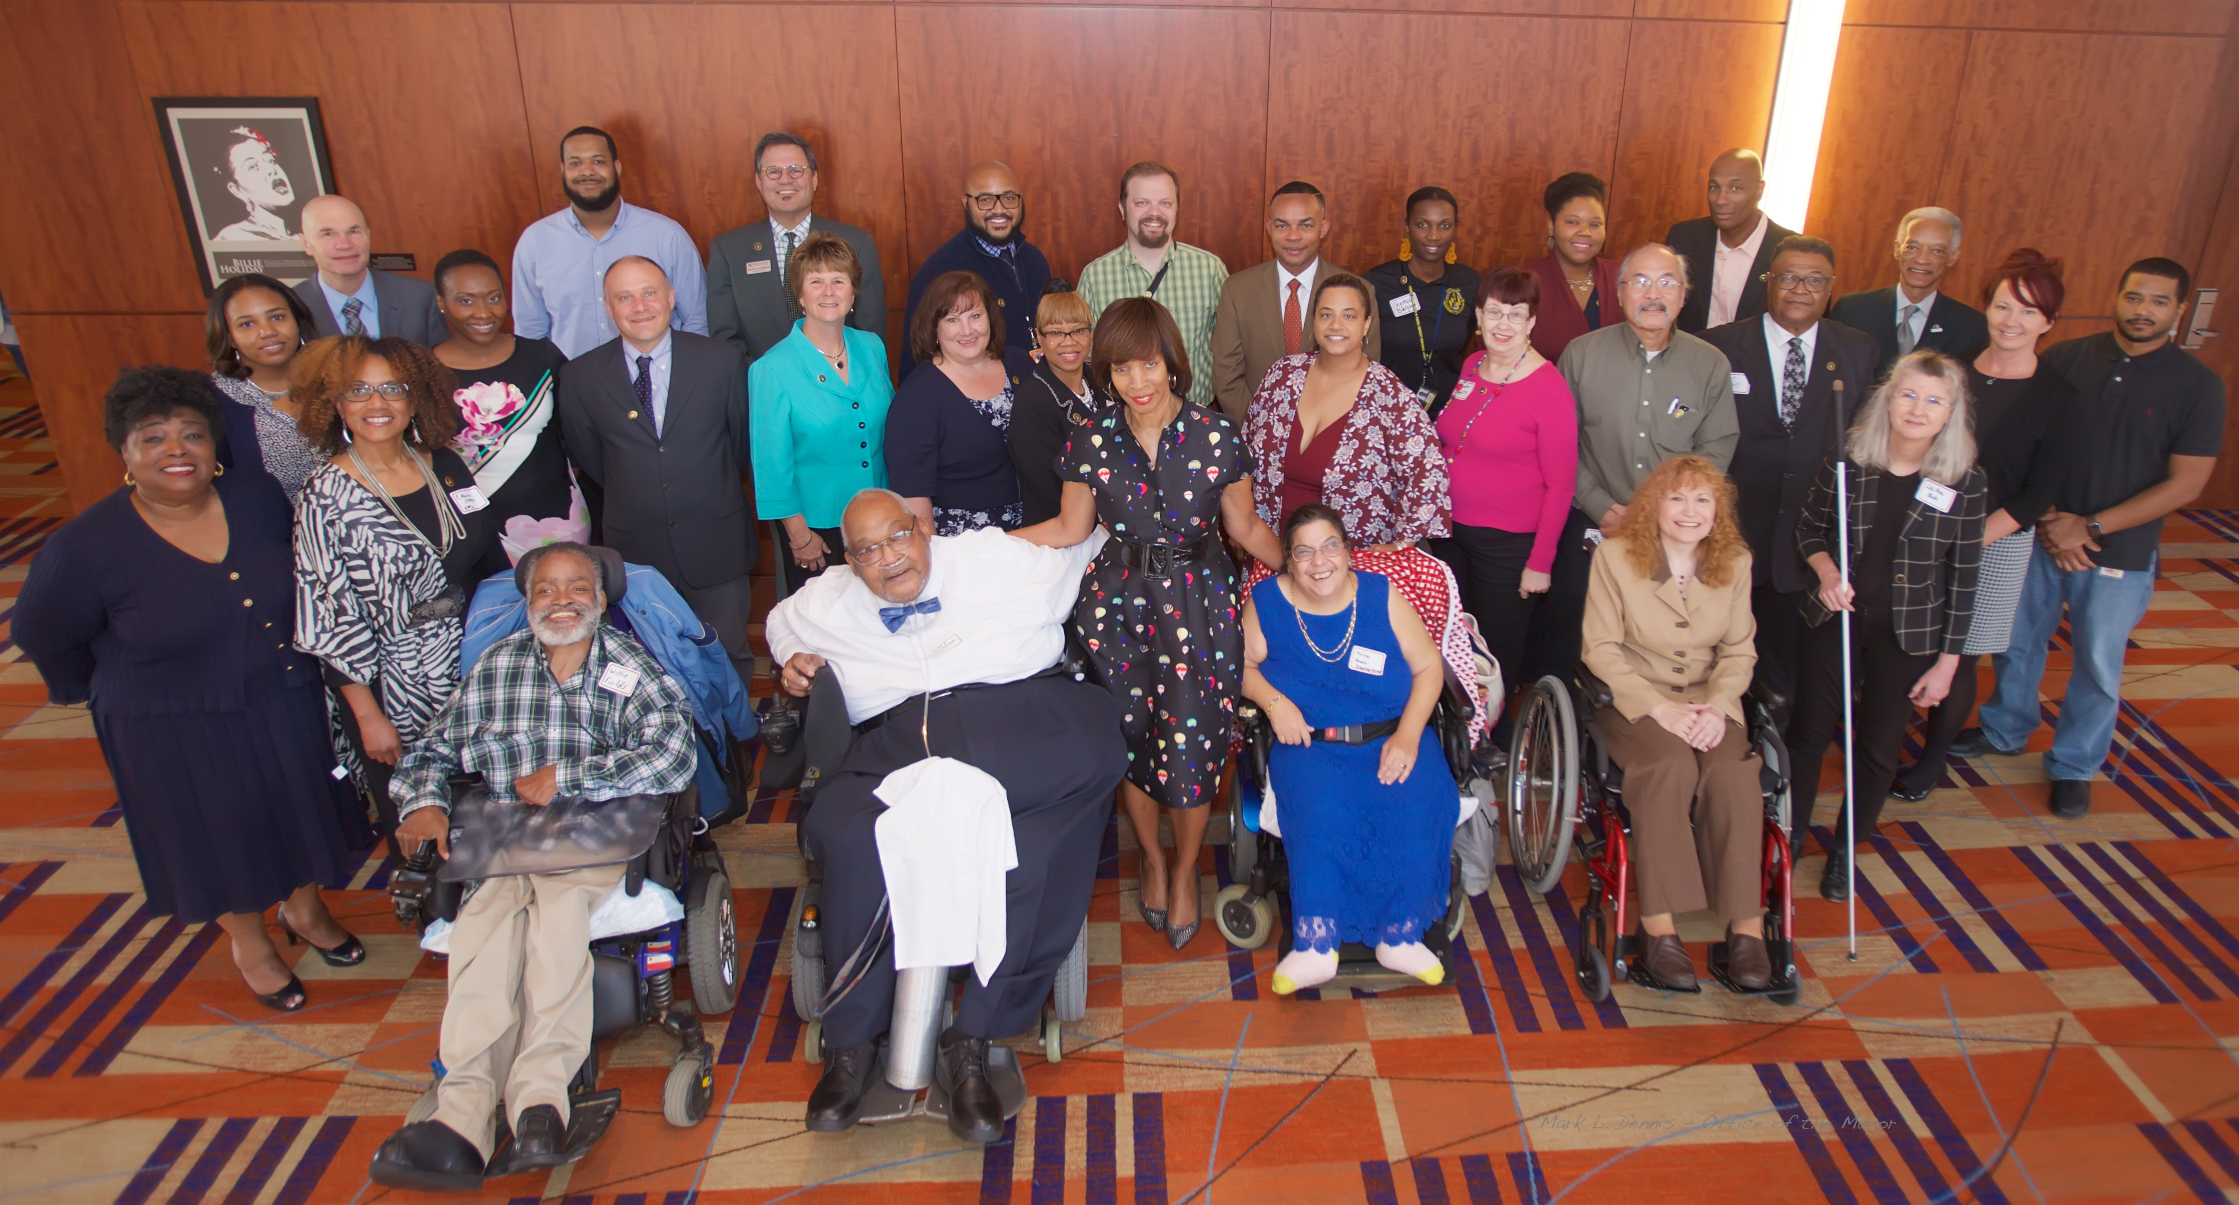 Commission on Disabilities Luncheon